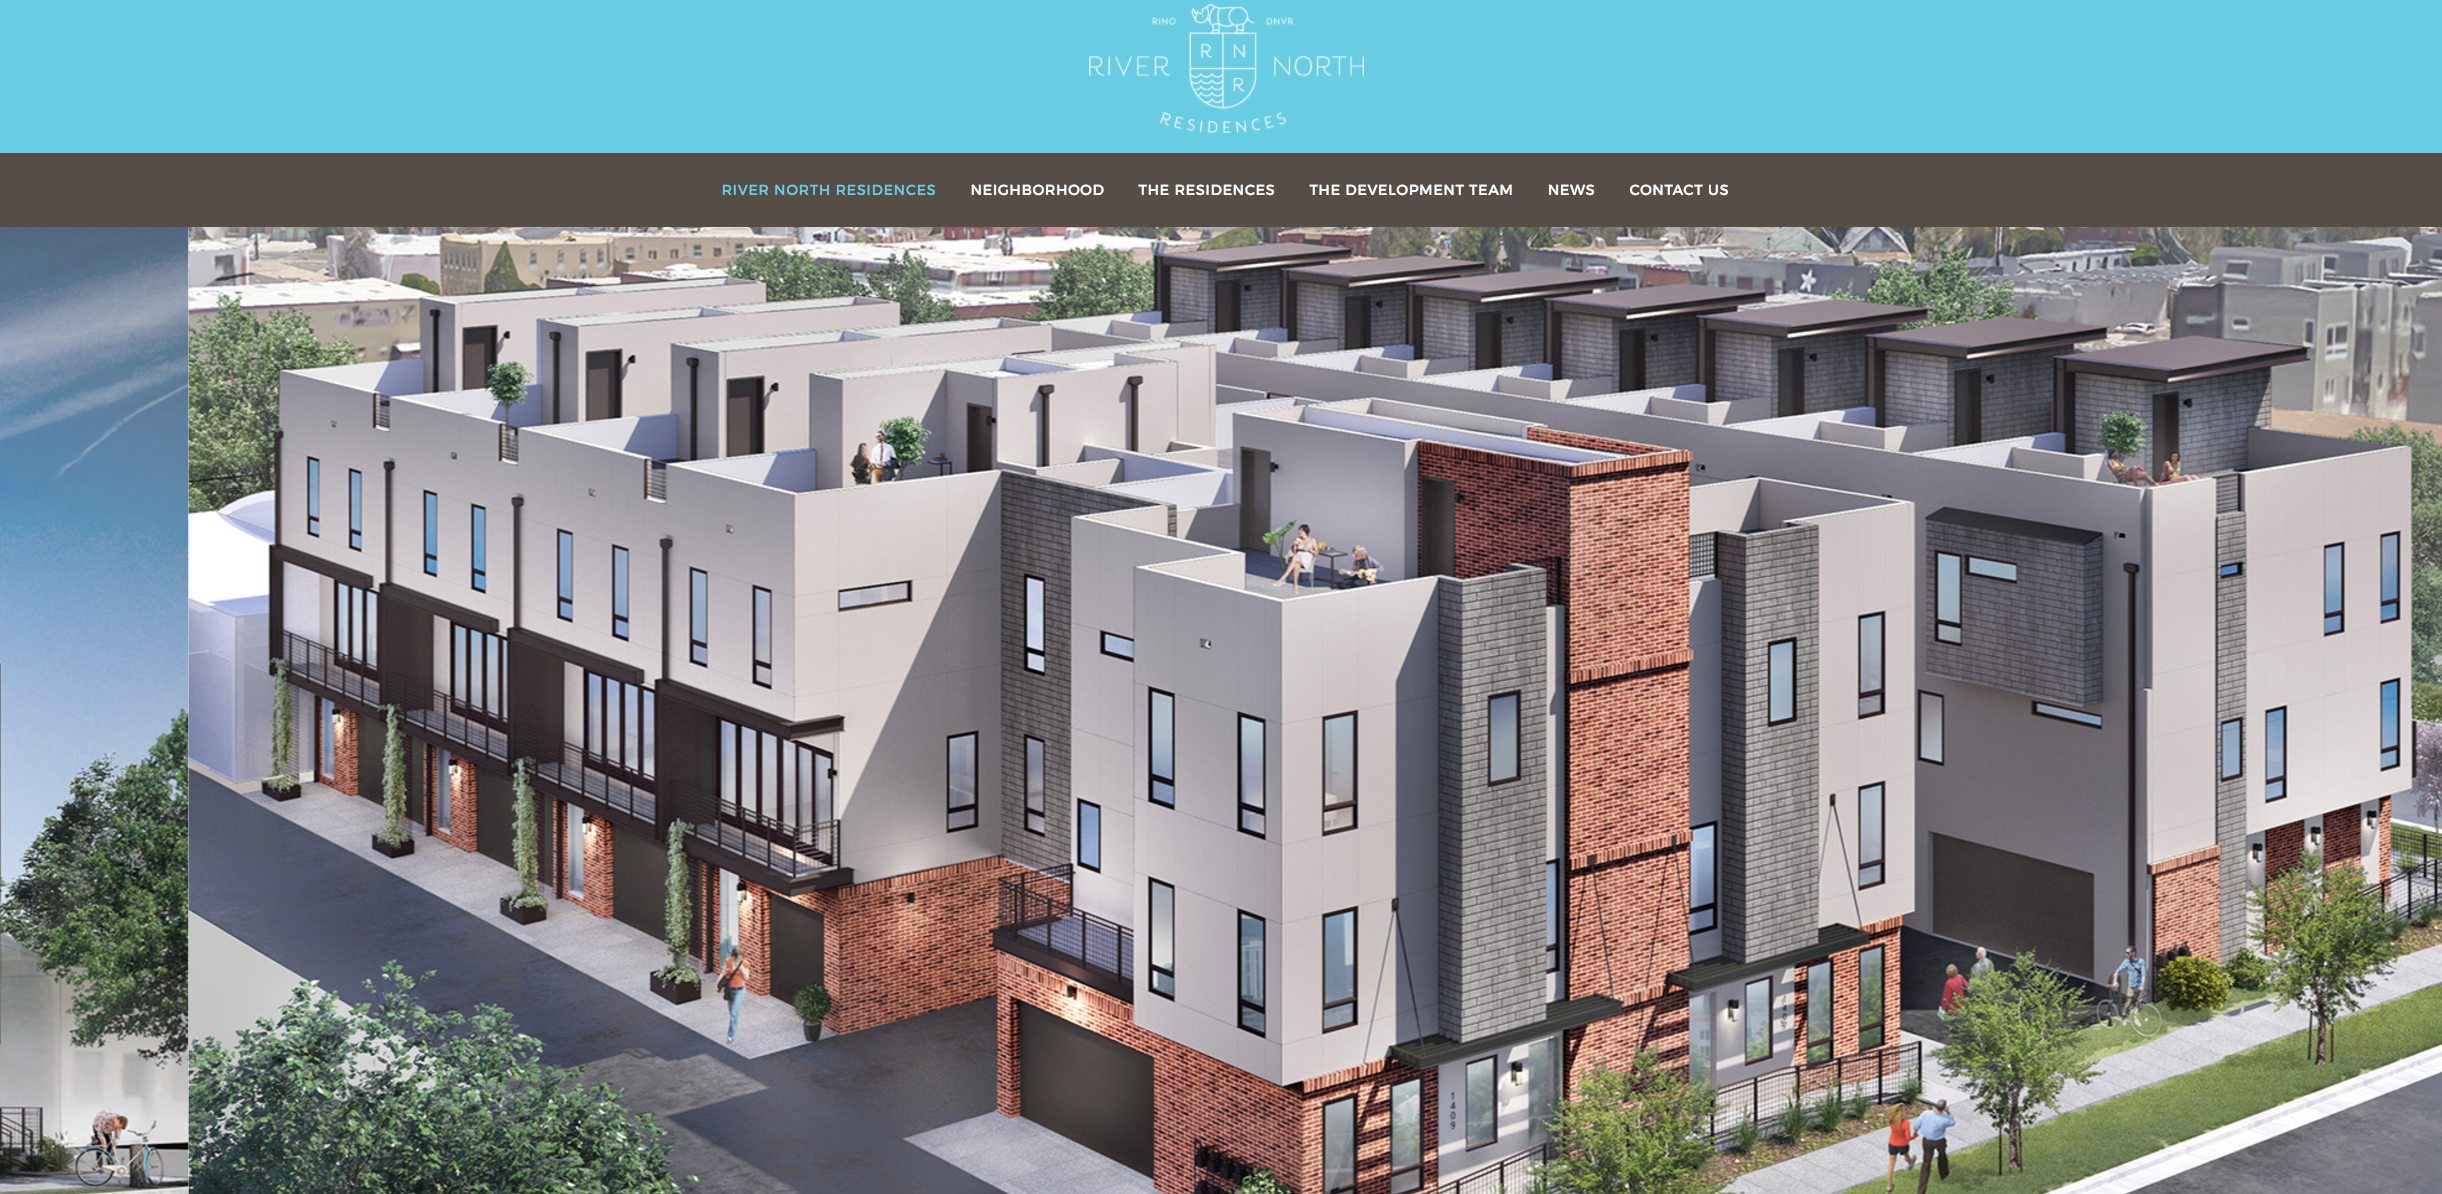 Site copy for proposed townhome development in Denver's RiNo neighborhood.    https://rinoresidences.com/